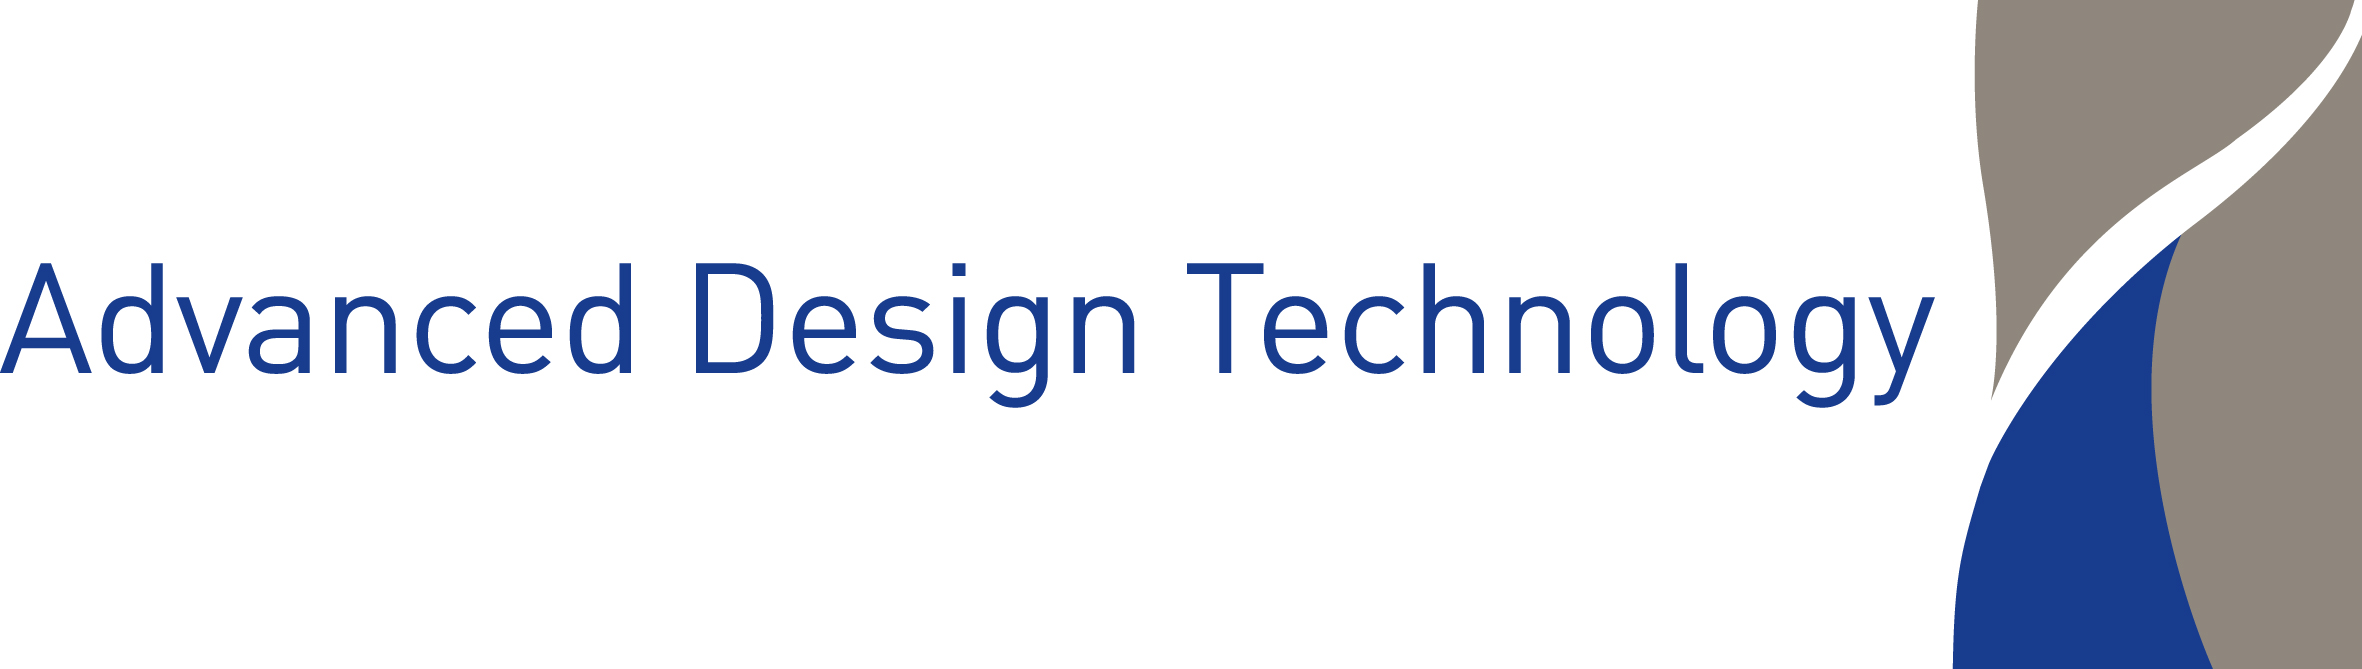 Advanced Design Technology